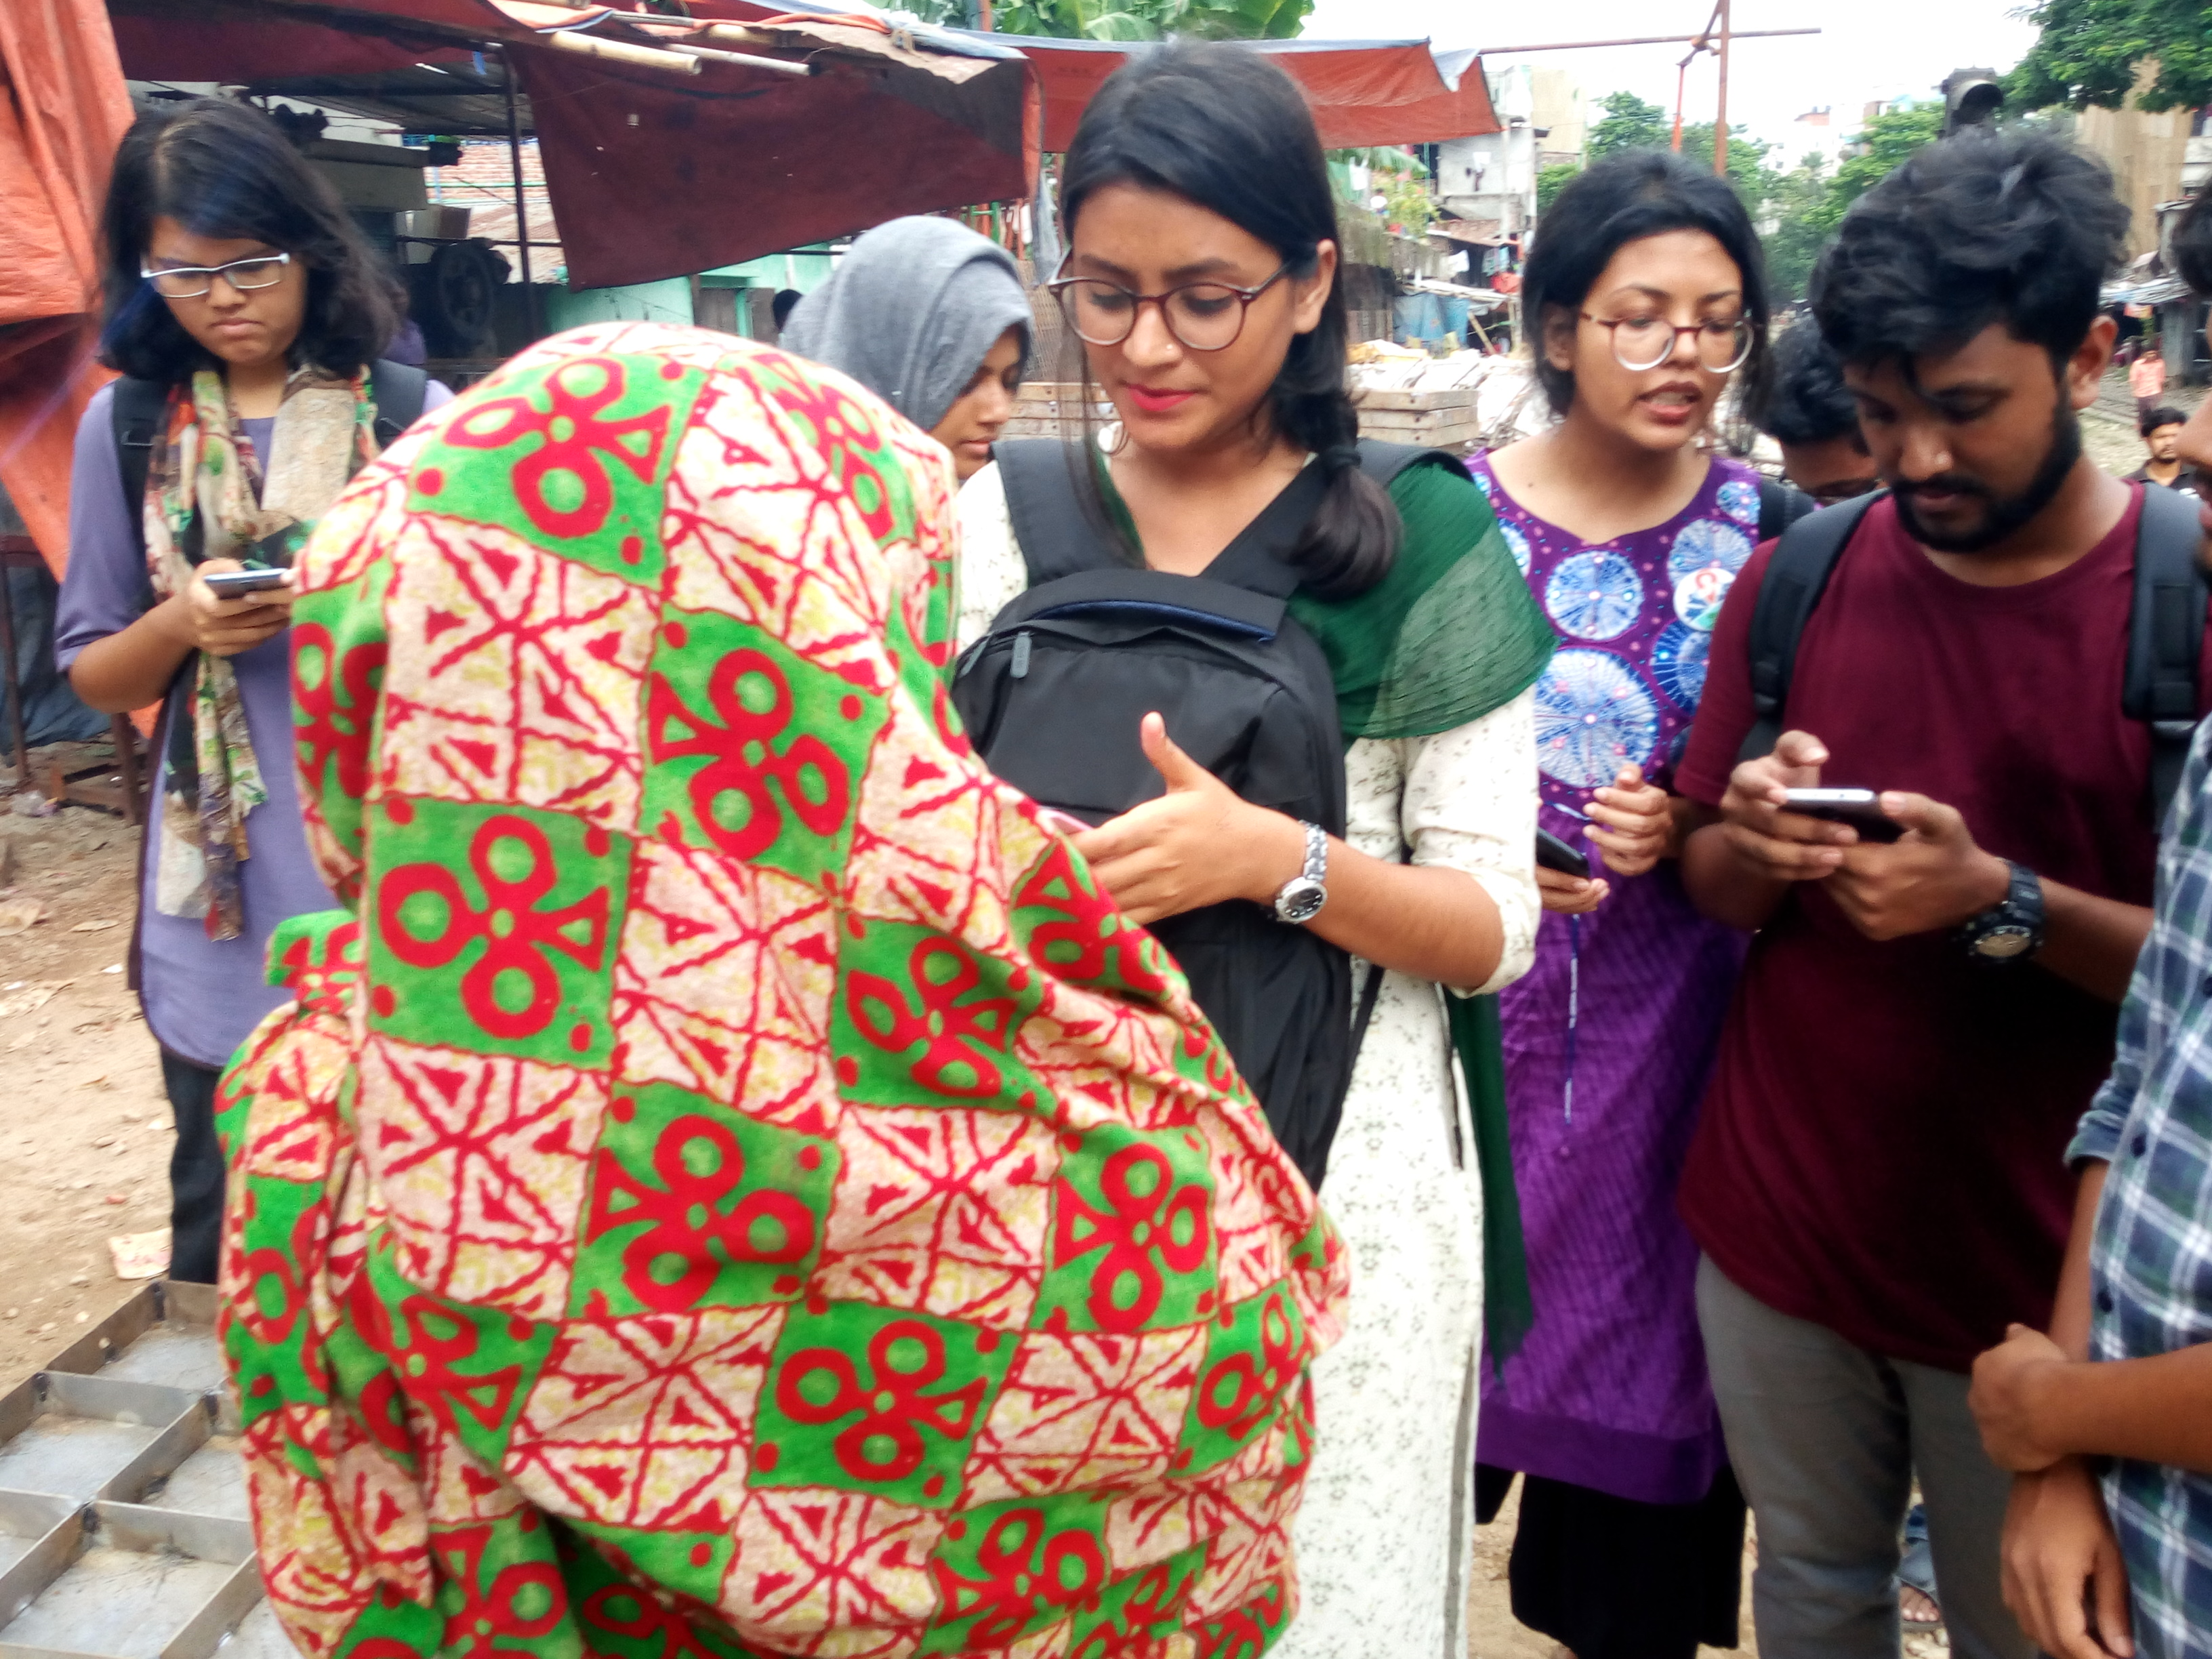 University of Dhaka students collecting the data from the internal displaced female respondents about the mental stress situation in the Moghbazer Slum area.